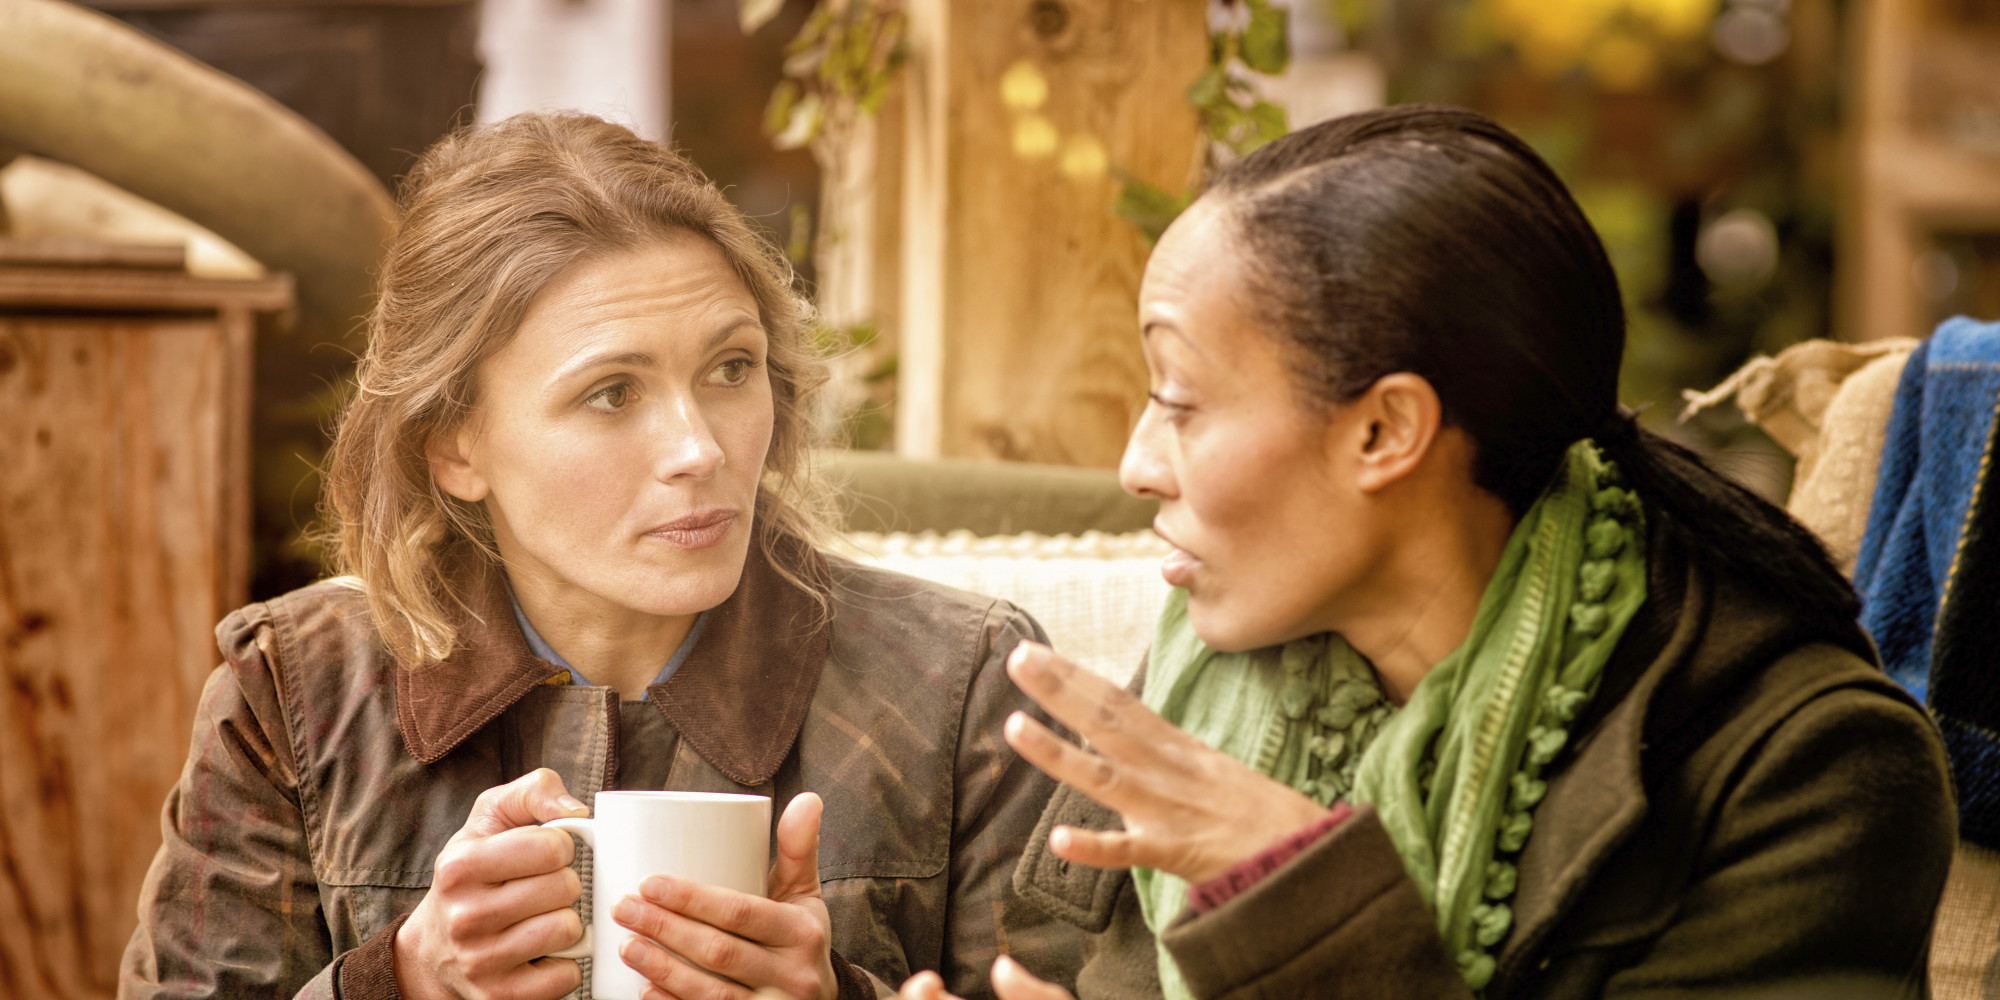 Two women talking or chatting over coffee, one is white and one is black.